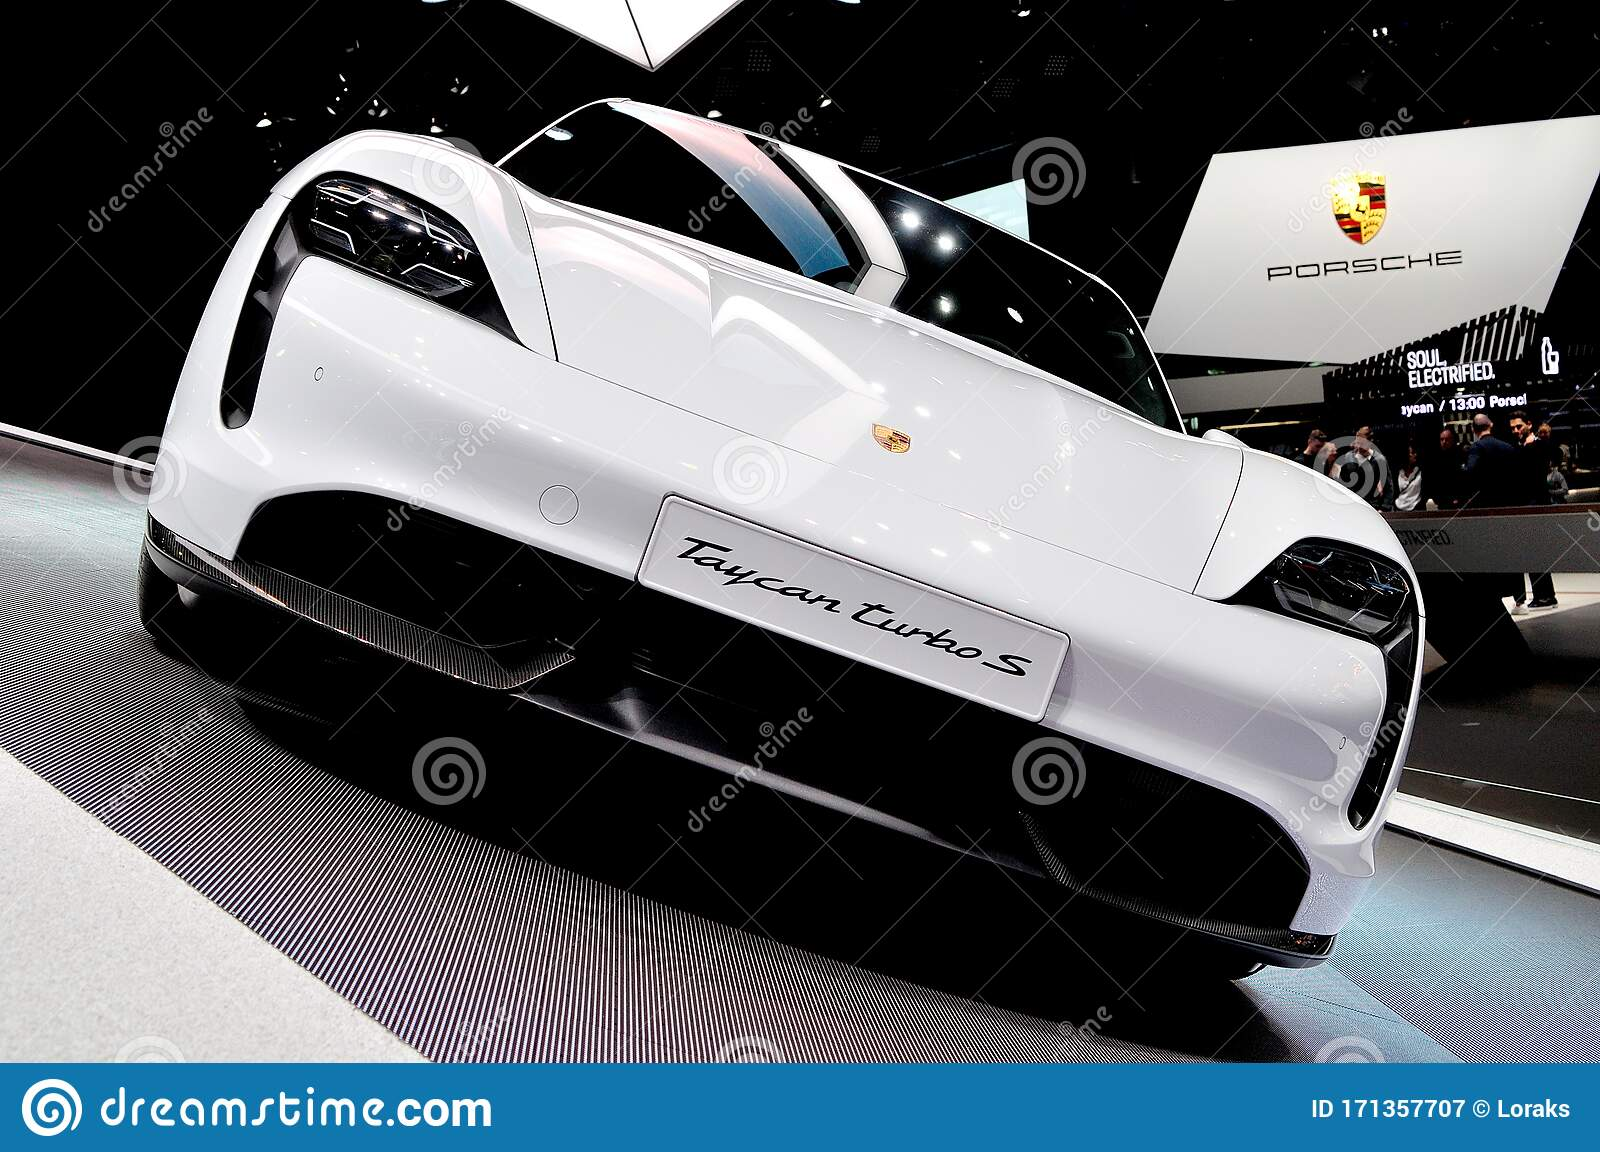 Porsche Taycan Turbo S Electric Car Editorial Photography Image Of Automotive Hybrid 171357707